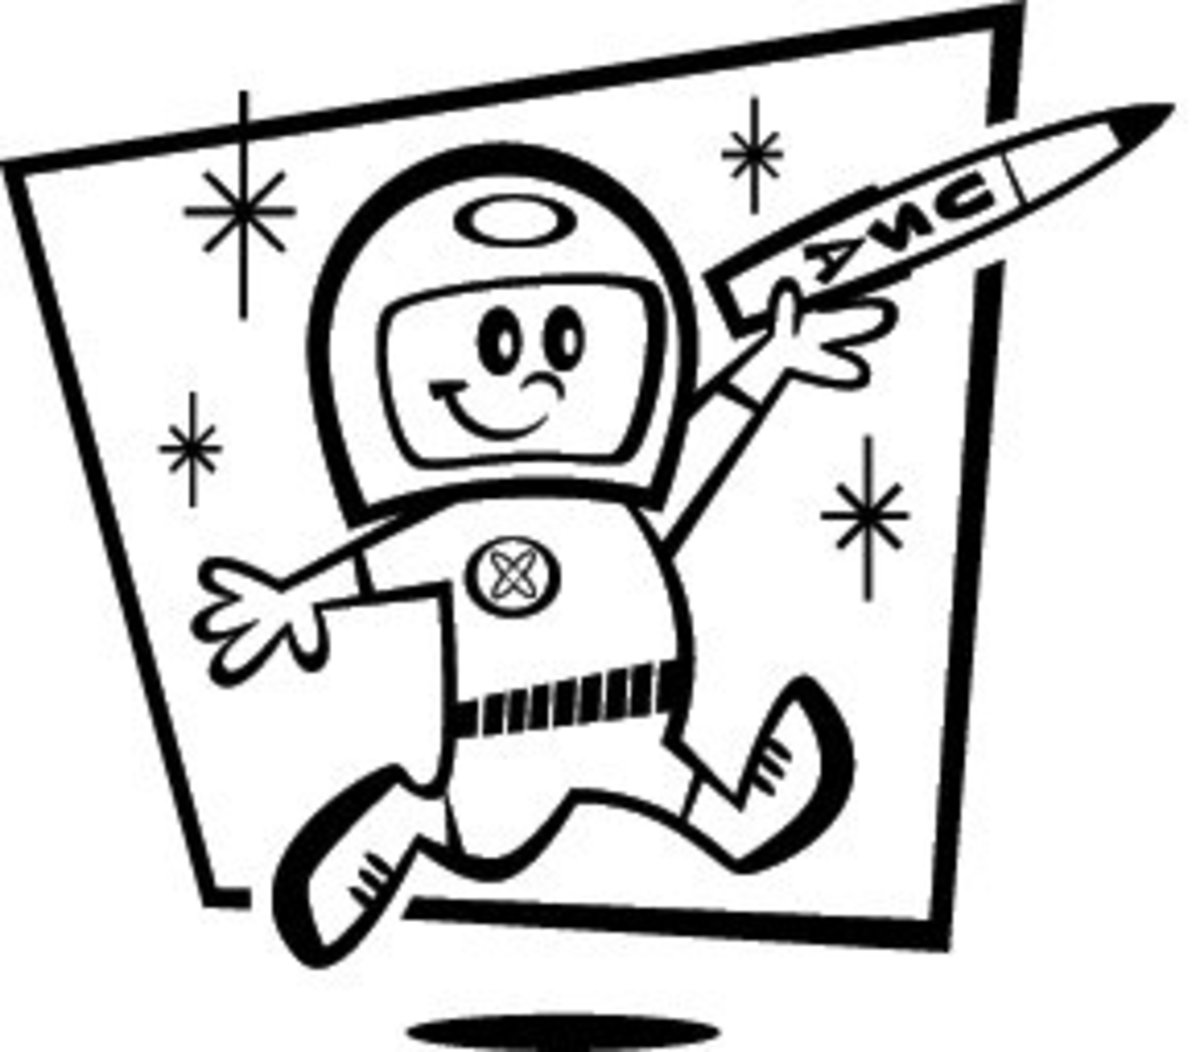 Astronaut boy cartoon/line drawing clip art. Courtesy of Velma's Retro Clip Art and Images. Visit the Web site to download this clip art (link below).